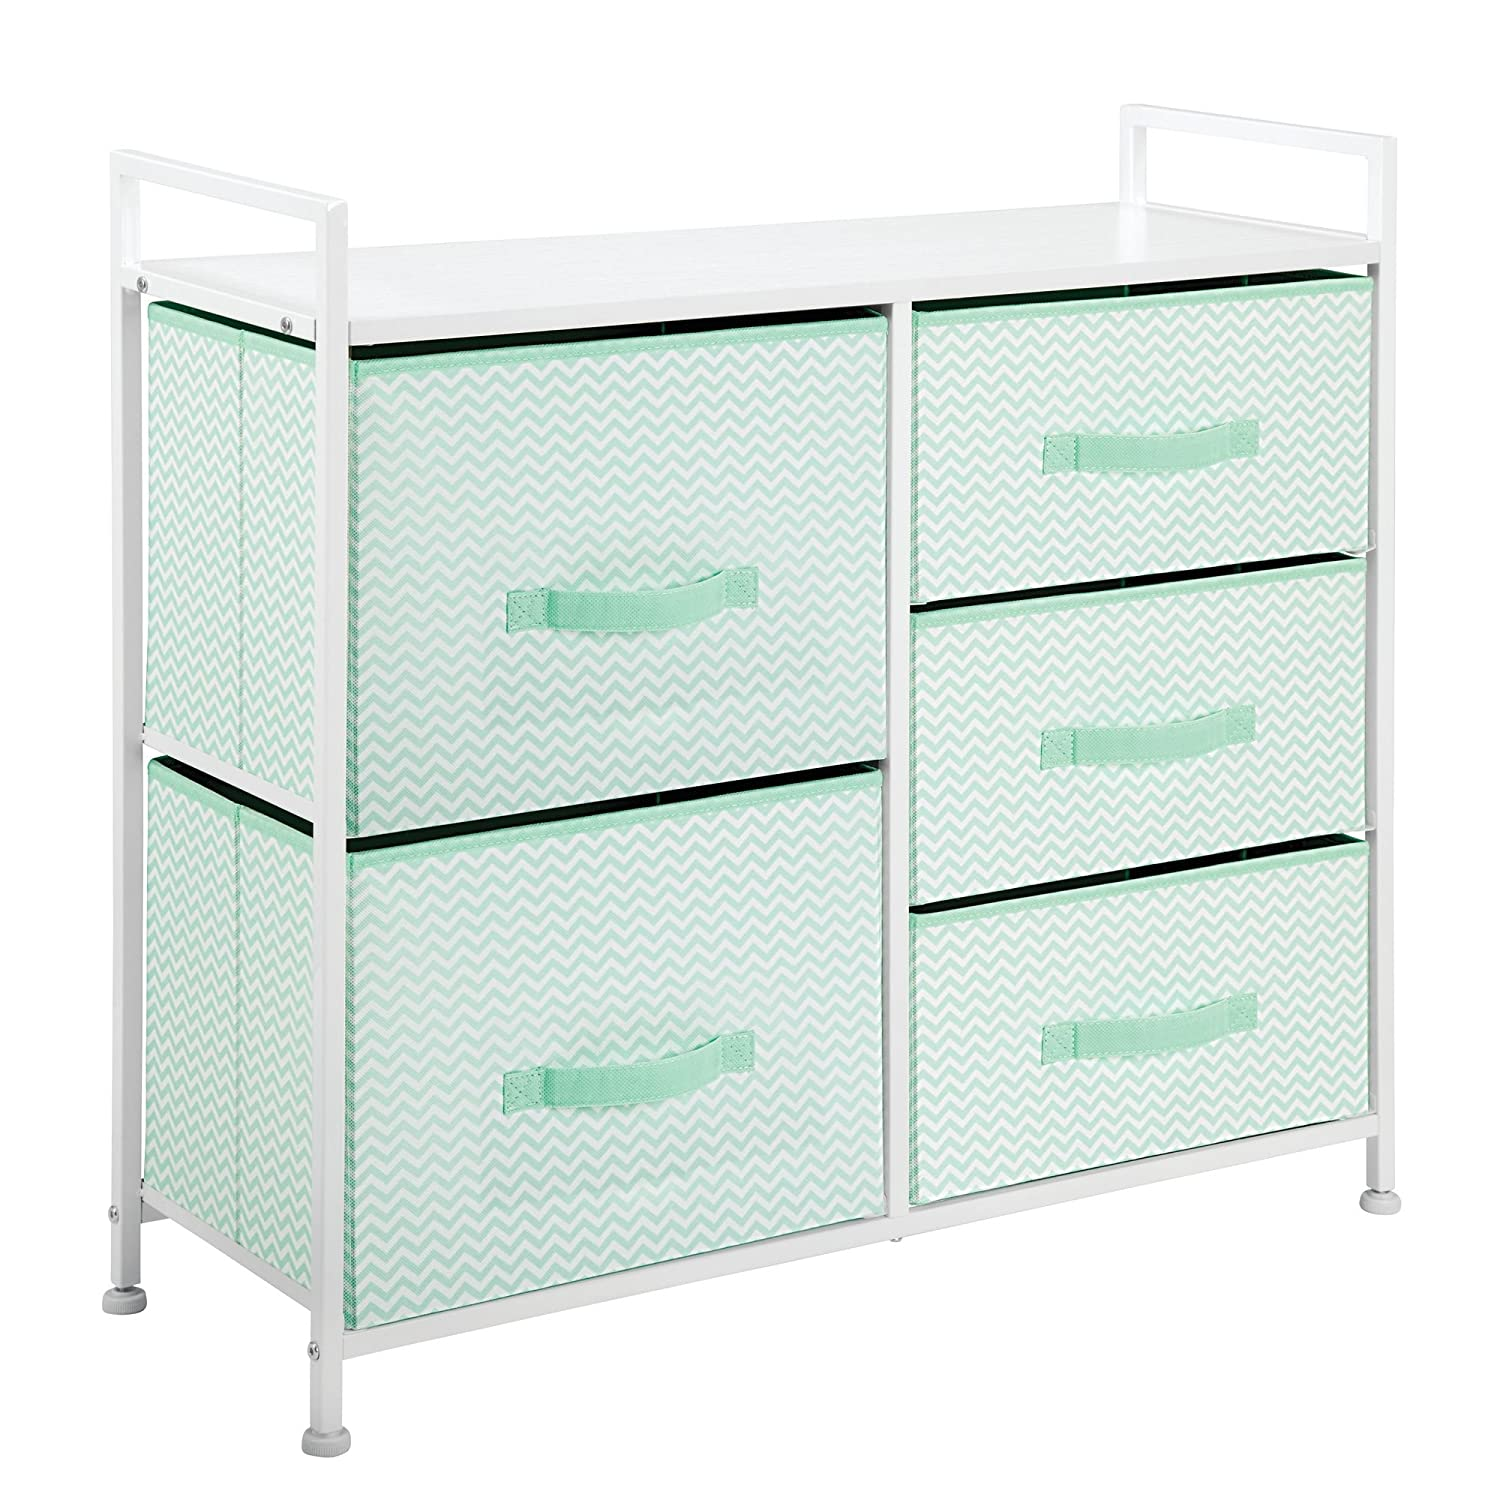 Mint//White Dorm Room mDesign Fabric Narrow 4-Drawer Dresser and Storage Organizer Unit for Bedroom Laundry Room